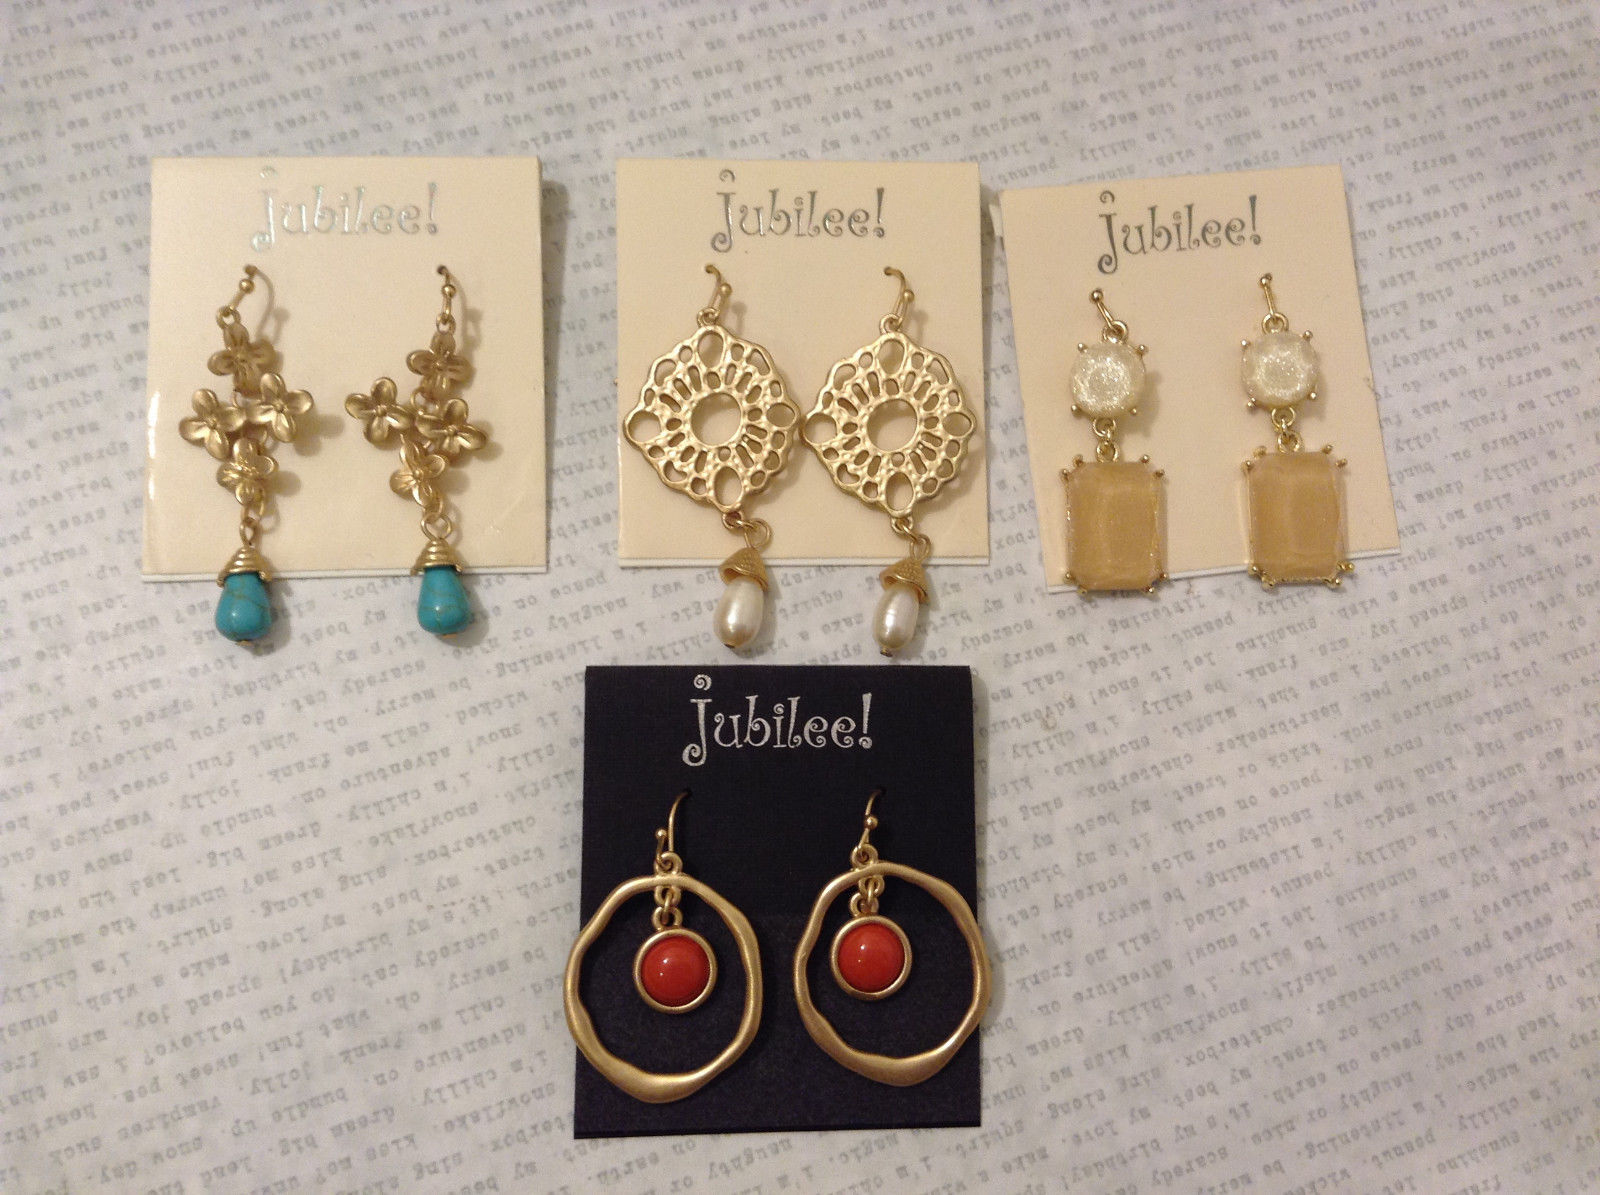 Lot of 4 pcs New Jubilee! Gold Tone Brushed Dangle Hook Earrings Collection